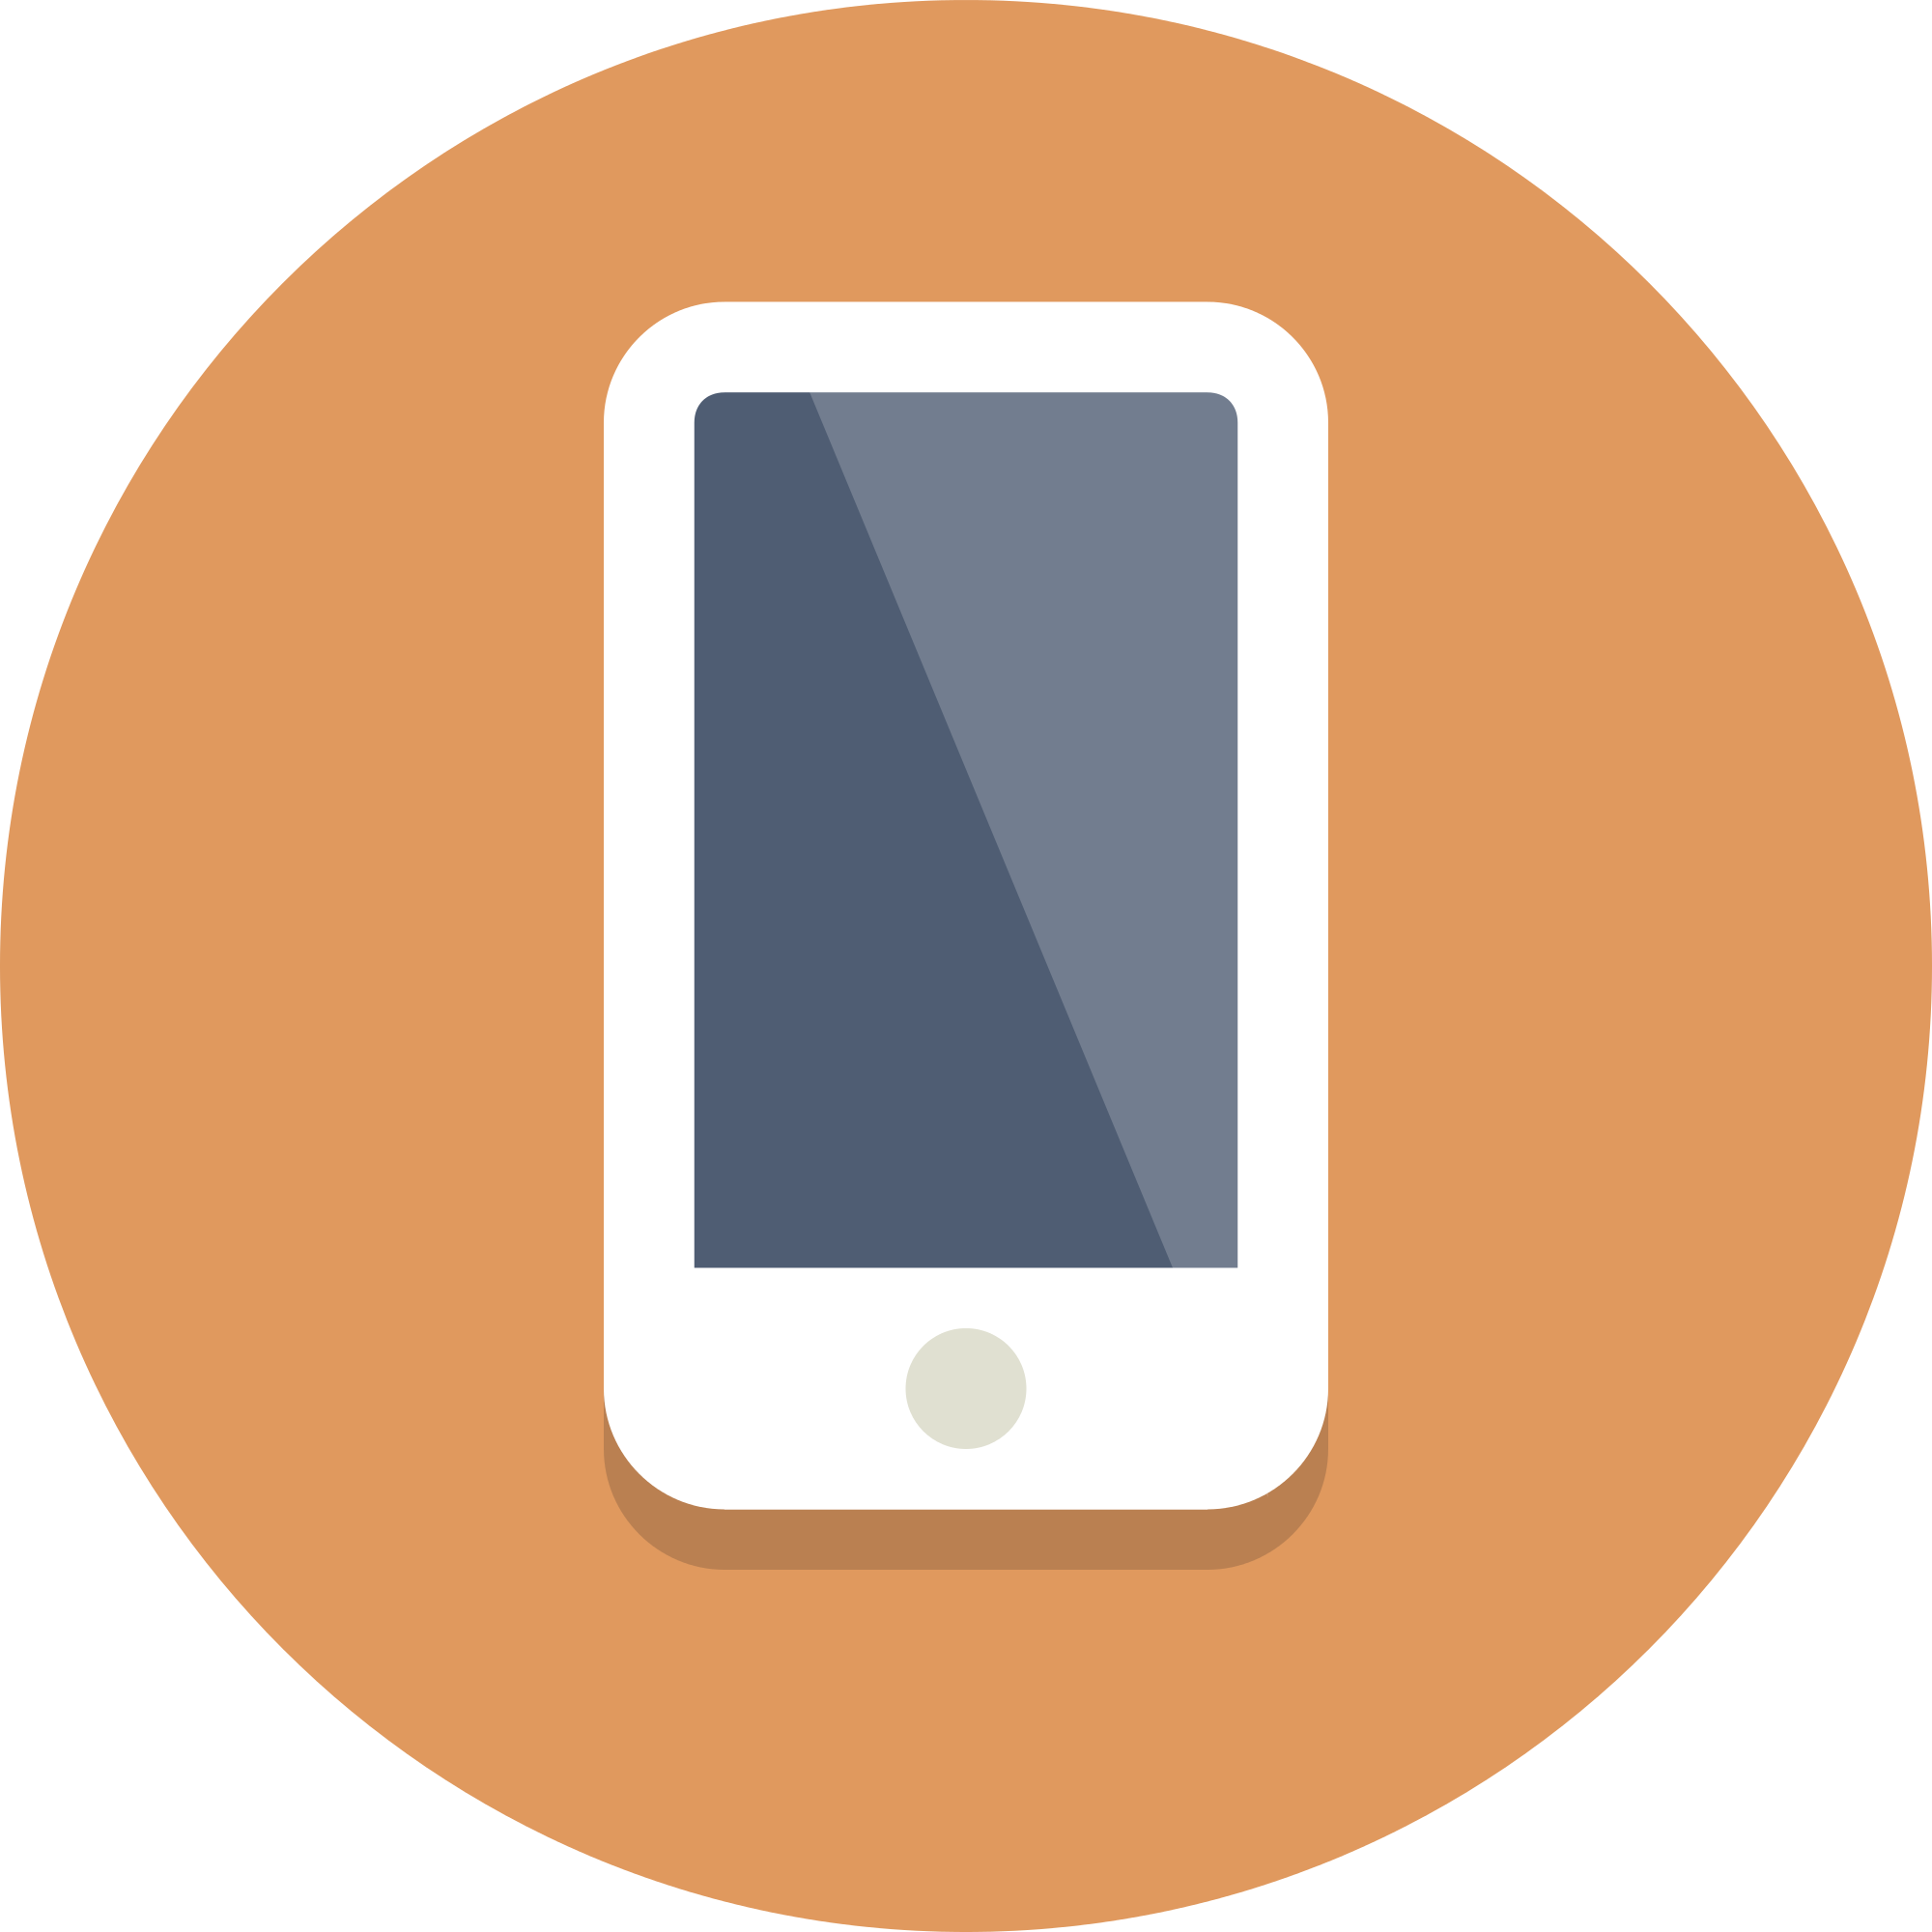 Icon png circle. File icons smartphone svg